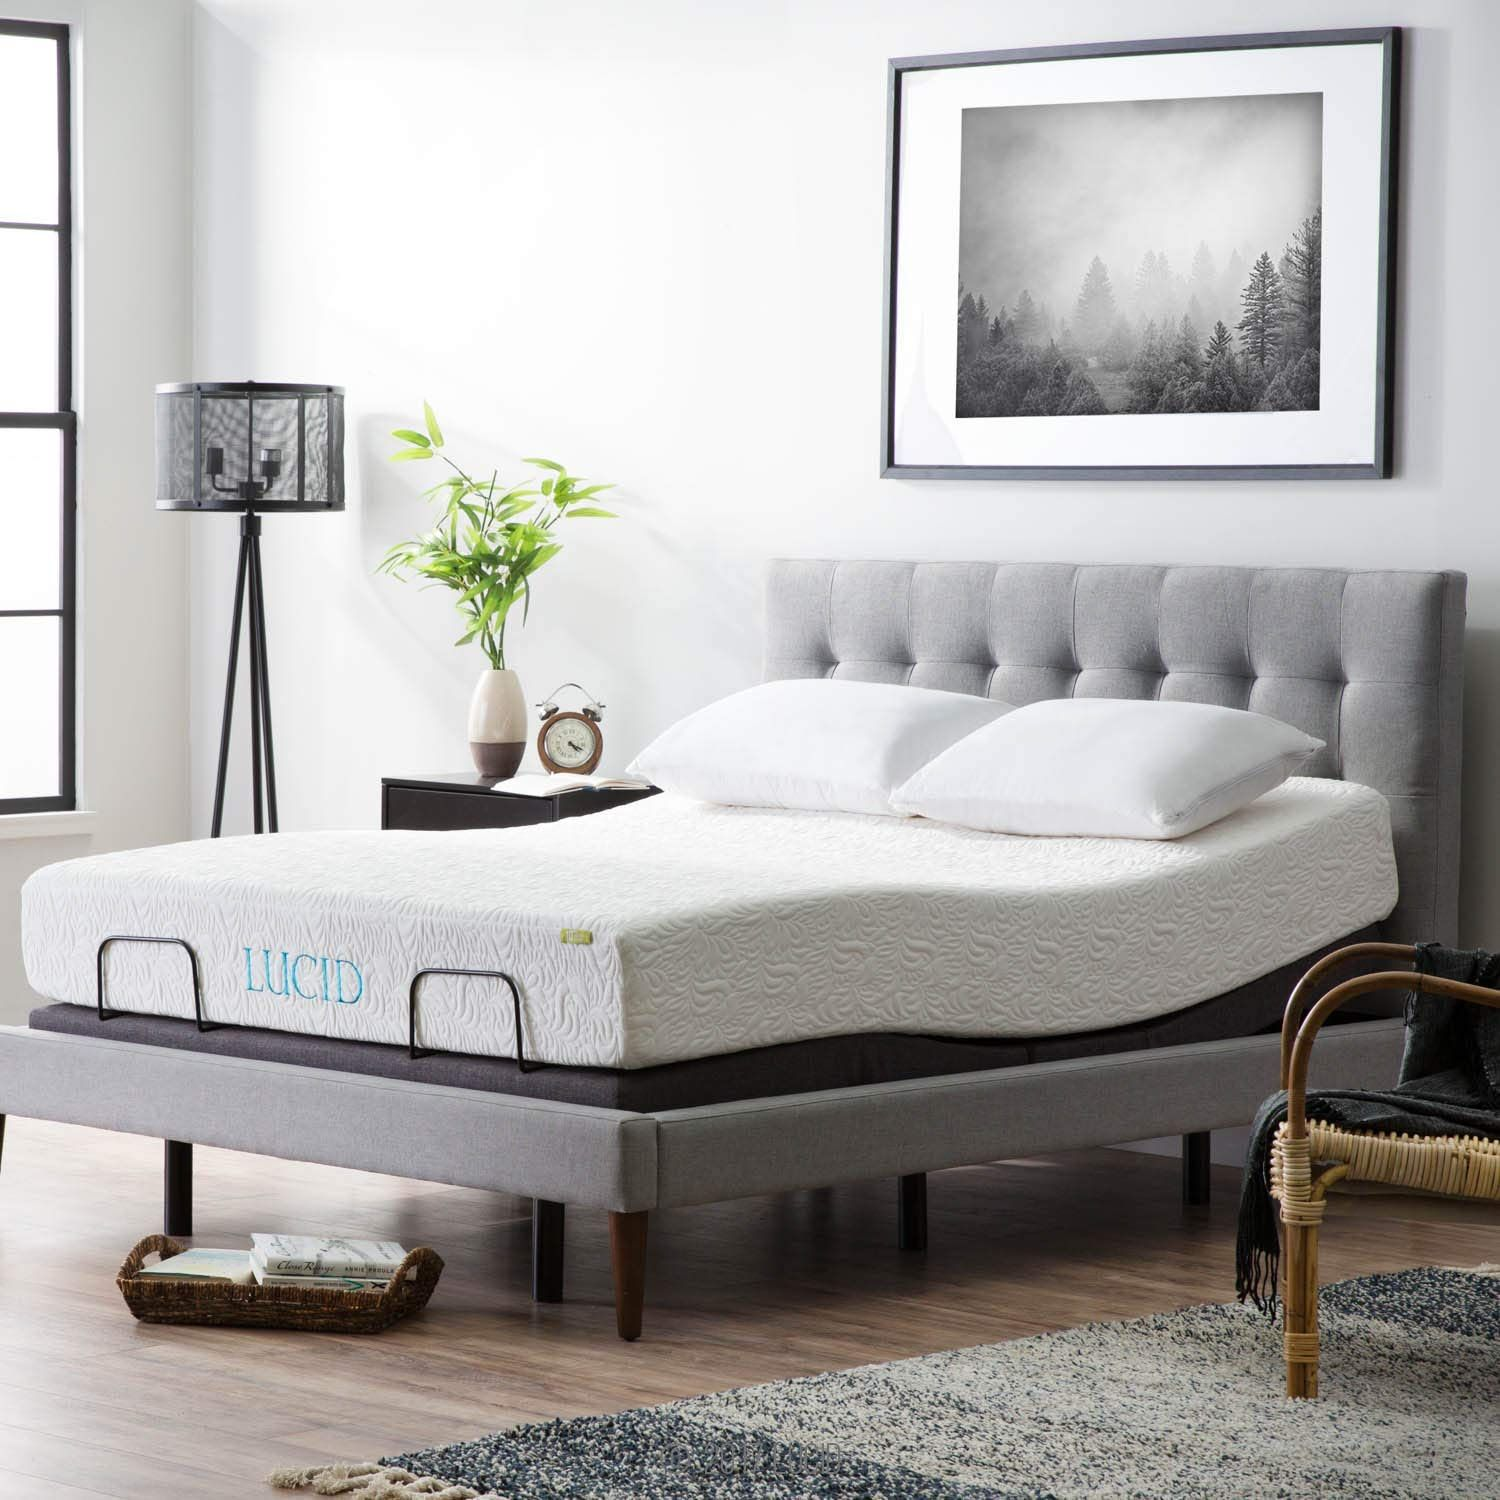 LUCID L300 Adjustable Bed Base 5 Minute Assembly Dual